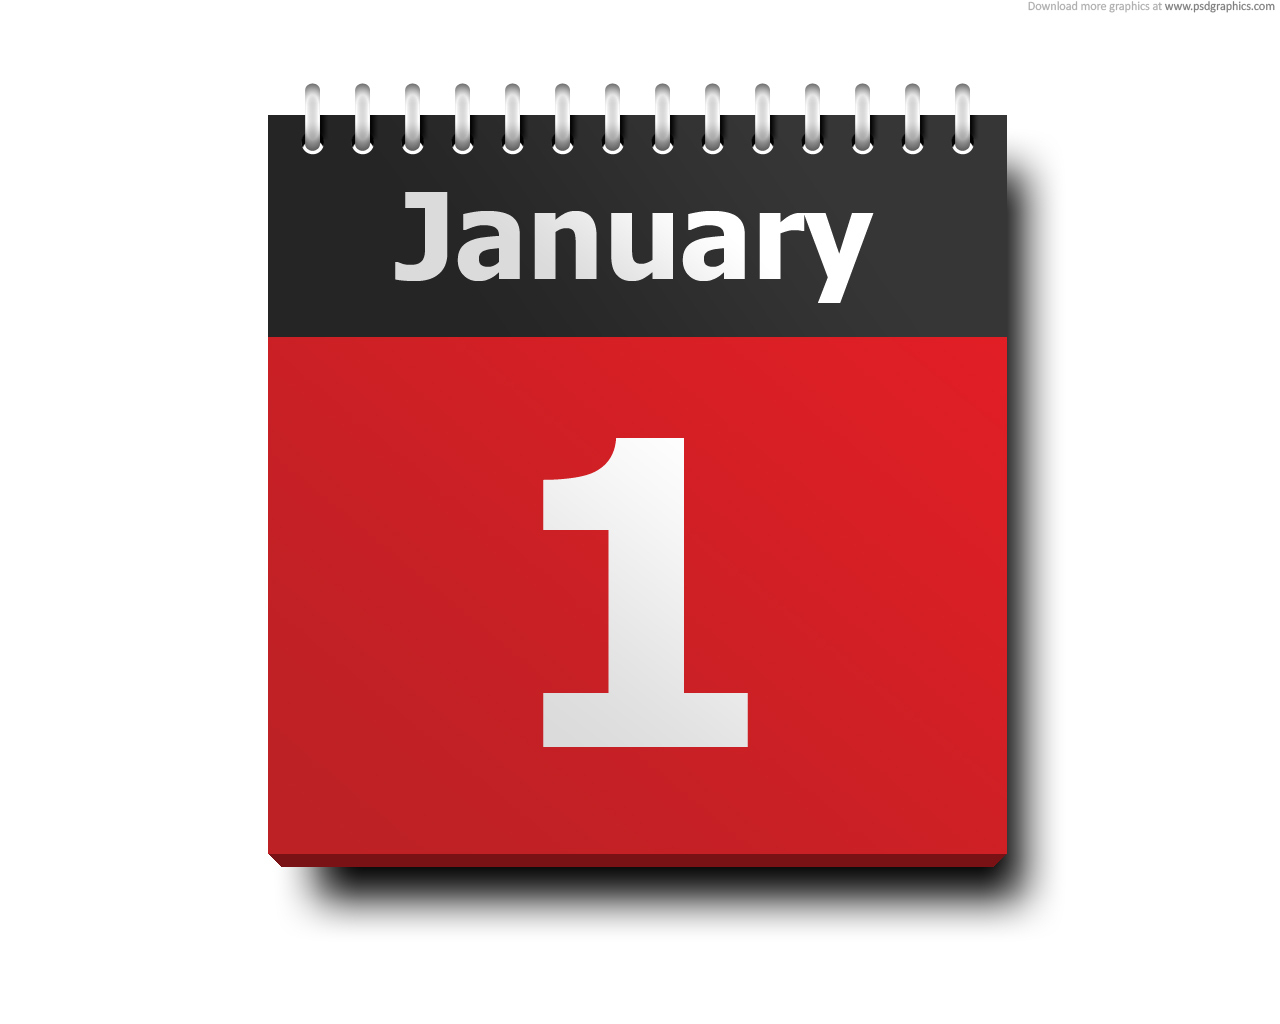 January 1, Calendar Icon | Psdgraphics intended for Calendar Icon Psd